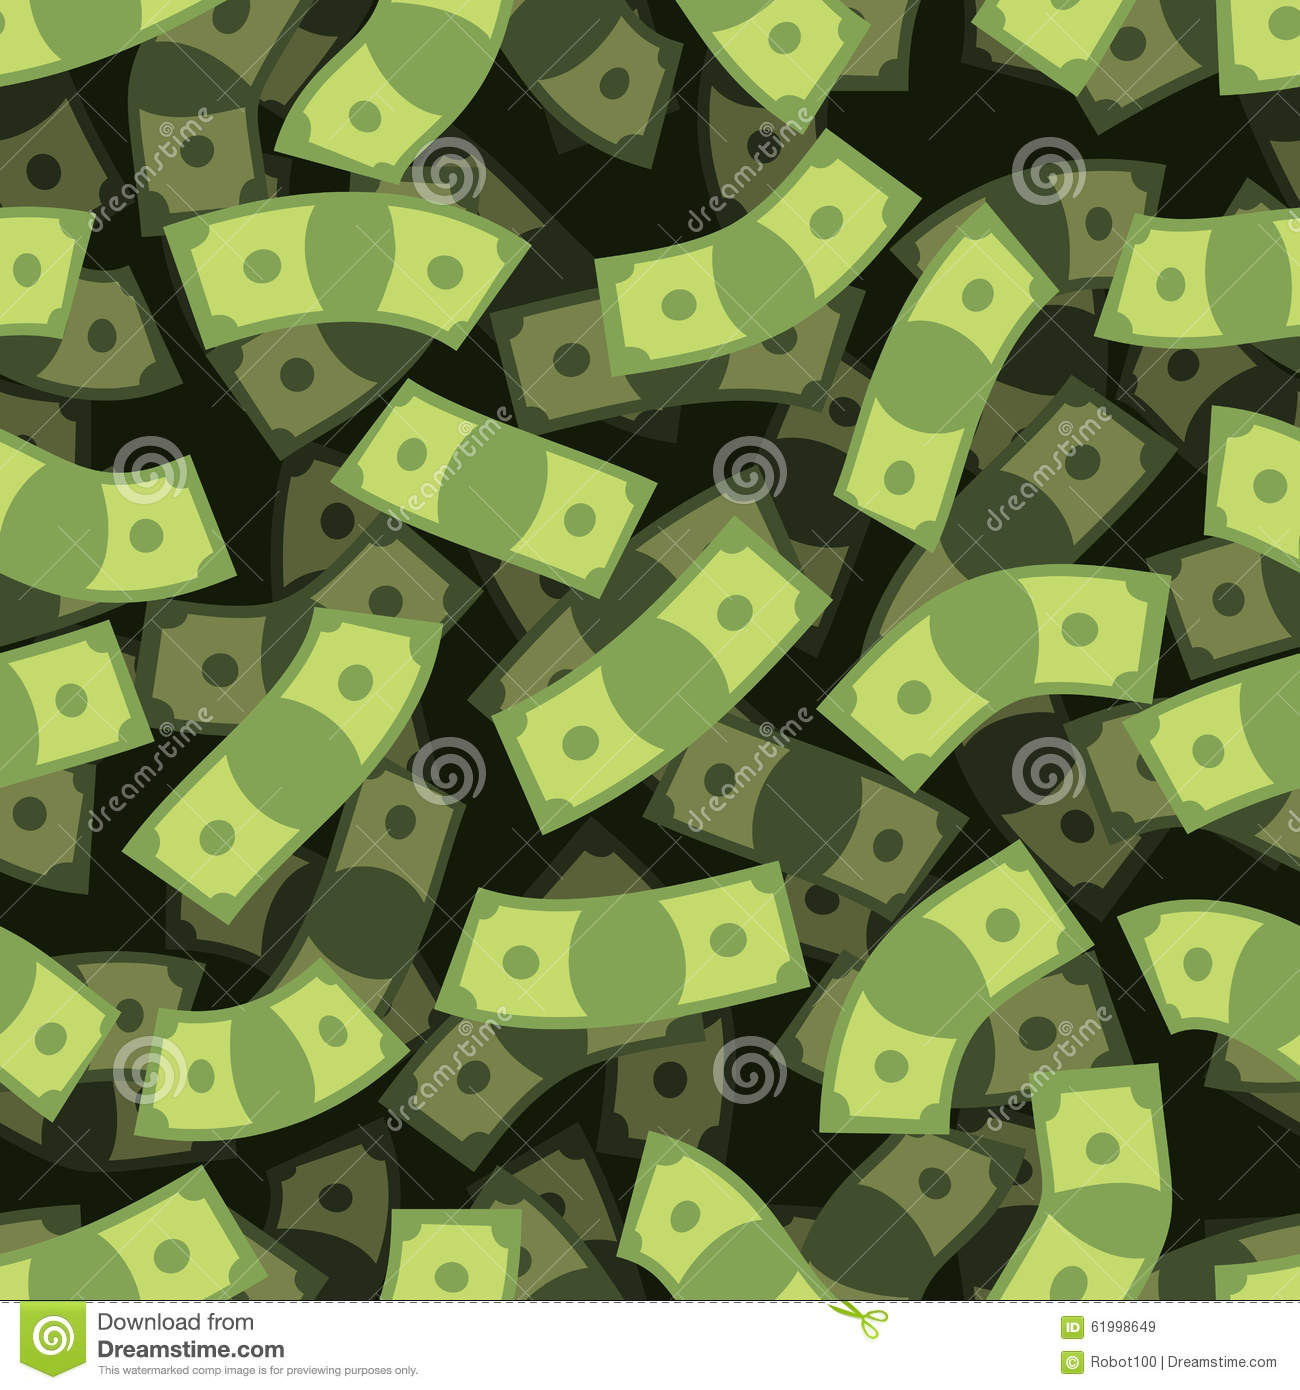 E Cigarettes Cartoon together with Hqdefault further Grinch together with Money Prison moreover Vectortoons X. on cartoon money stack image